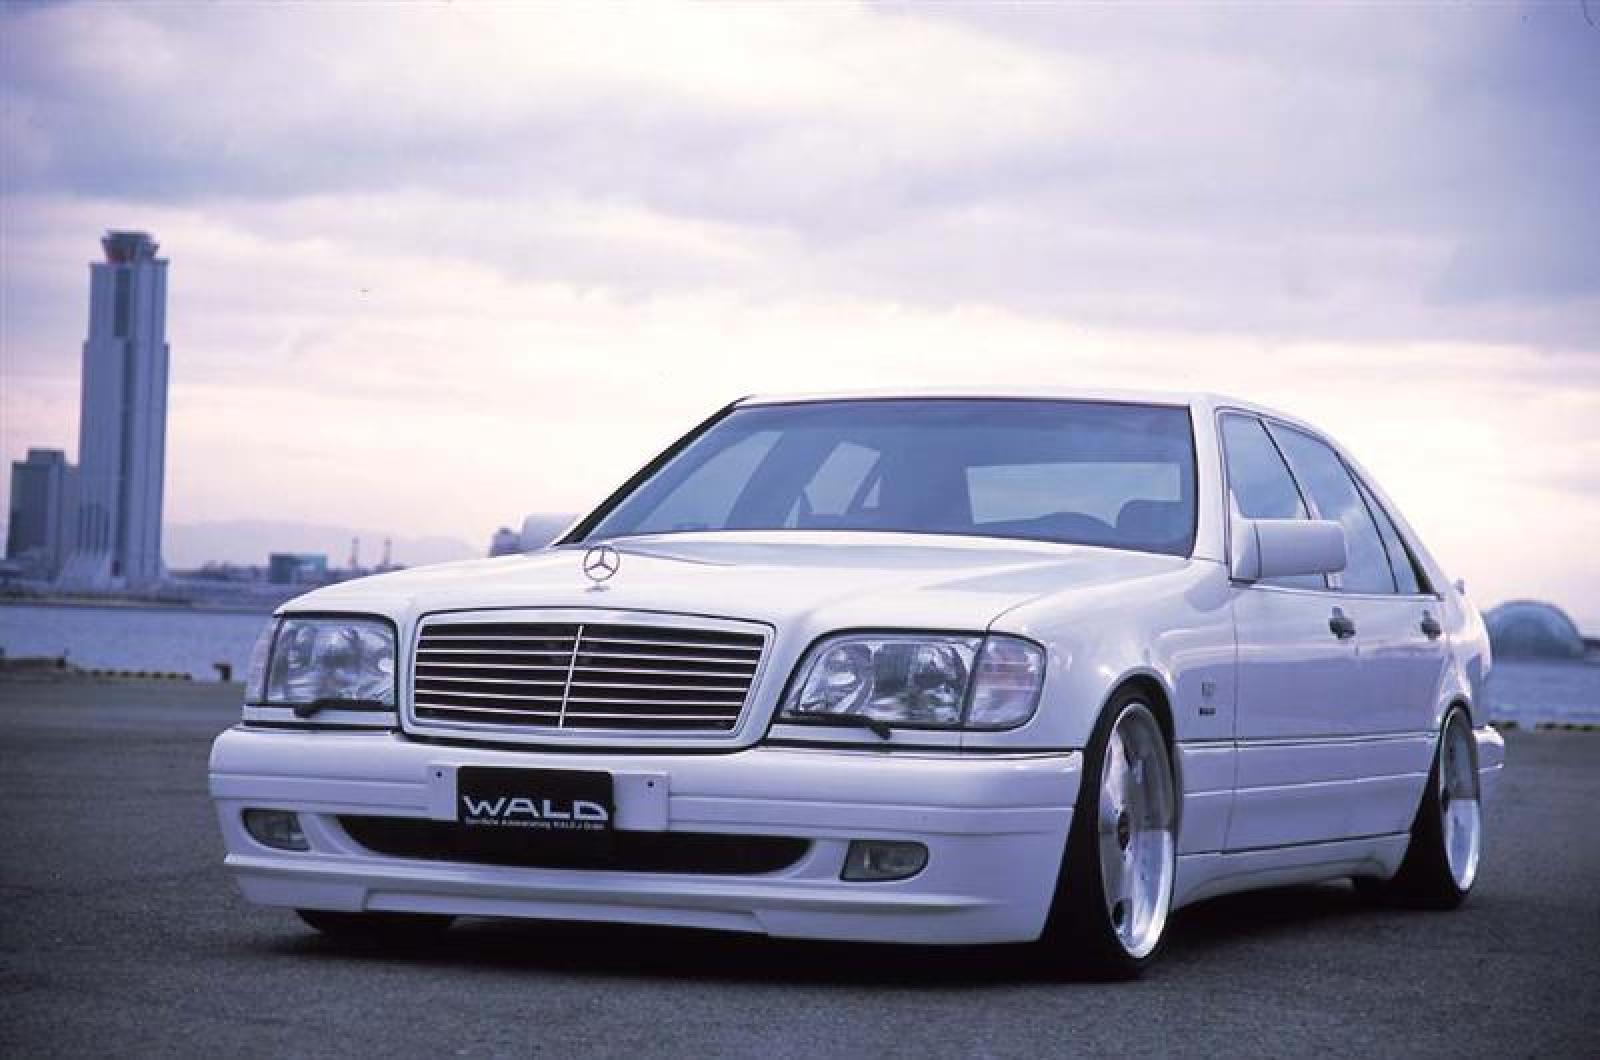 1996 mercedes benz s class information and photos zombiedrive 800 1024 1280 1600 origin 1996 mercedes benz s class fandeluxe Choice Image